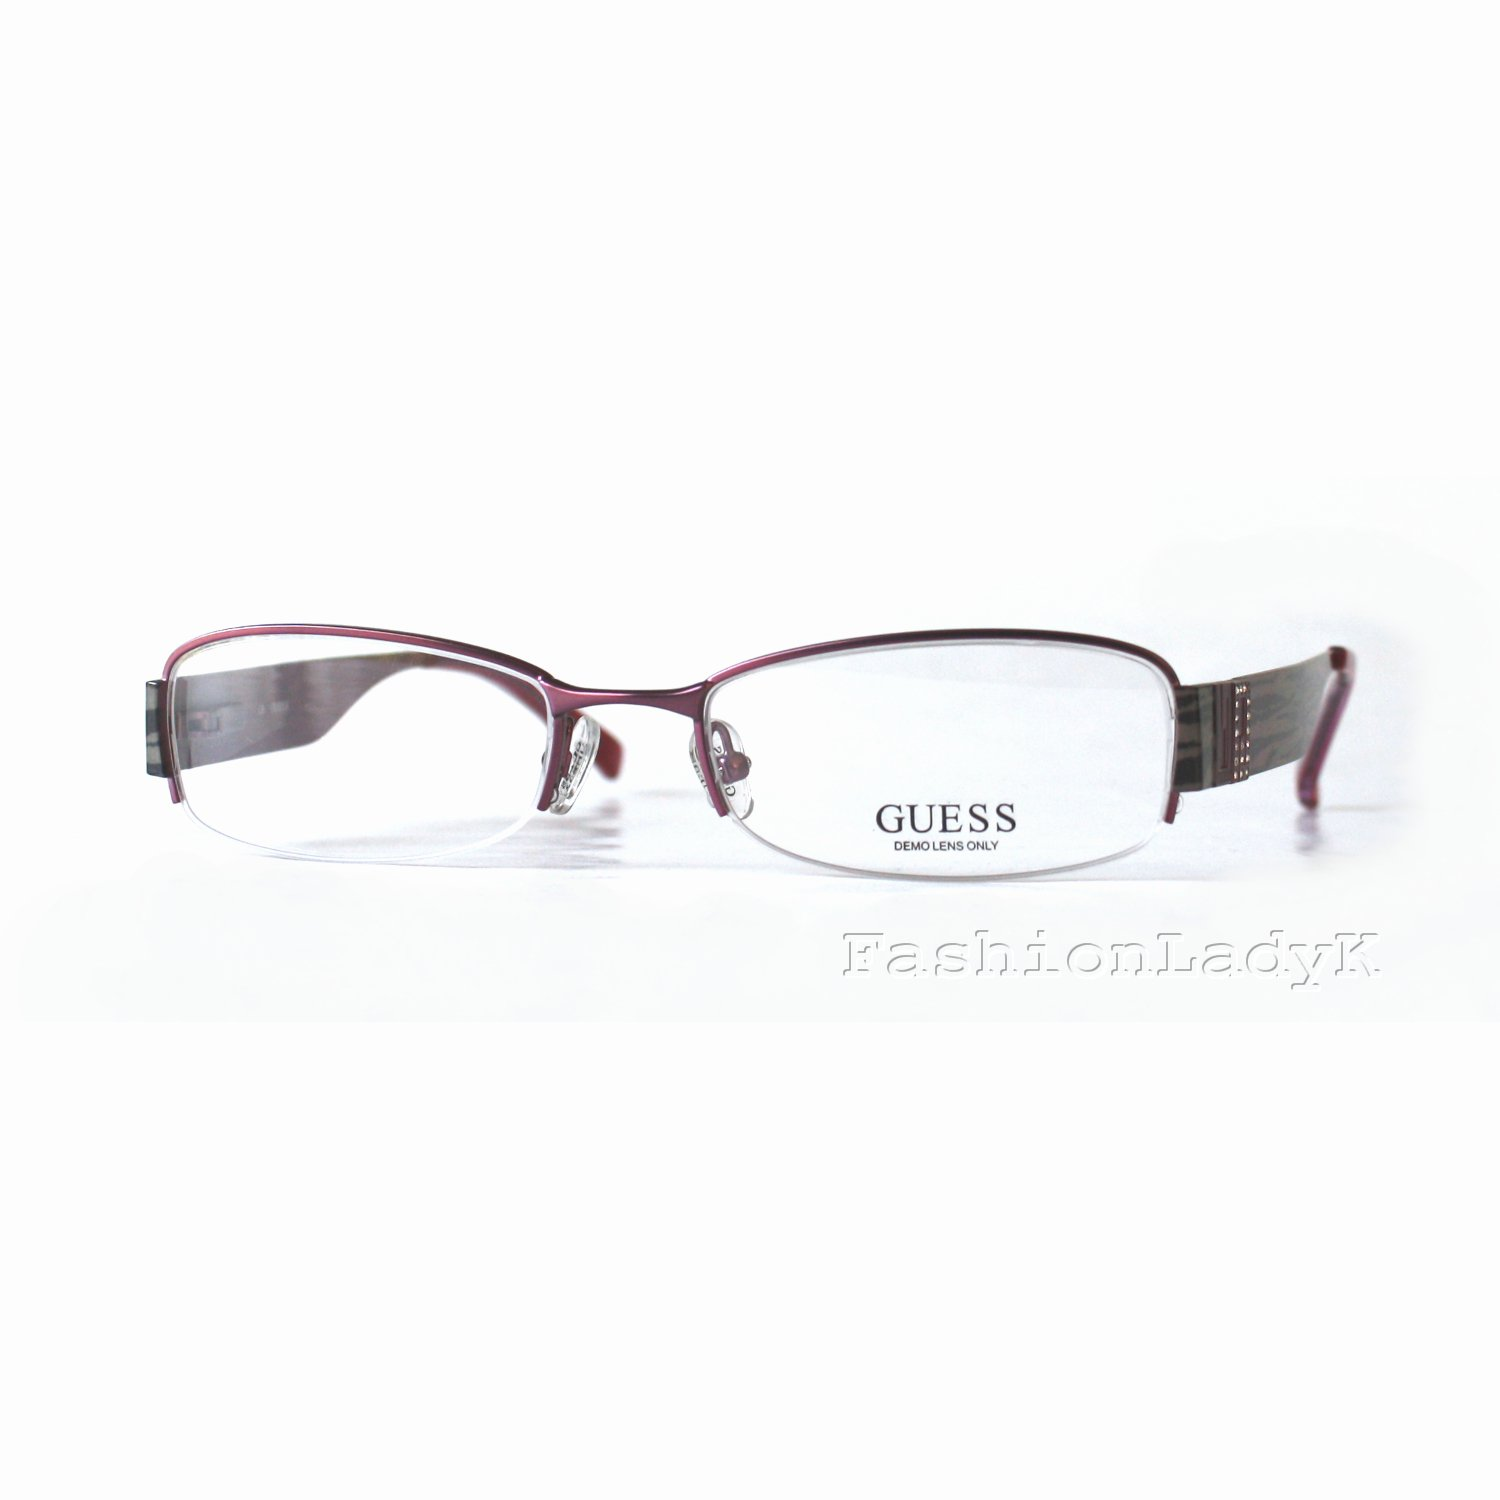 GUESS Purple Optical Eyeglasses Frame GU1584ST BER 52mm New w/ Case